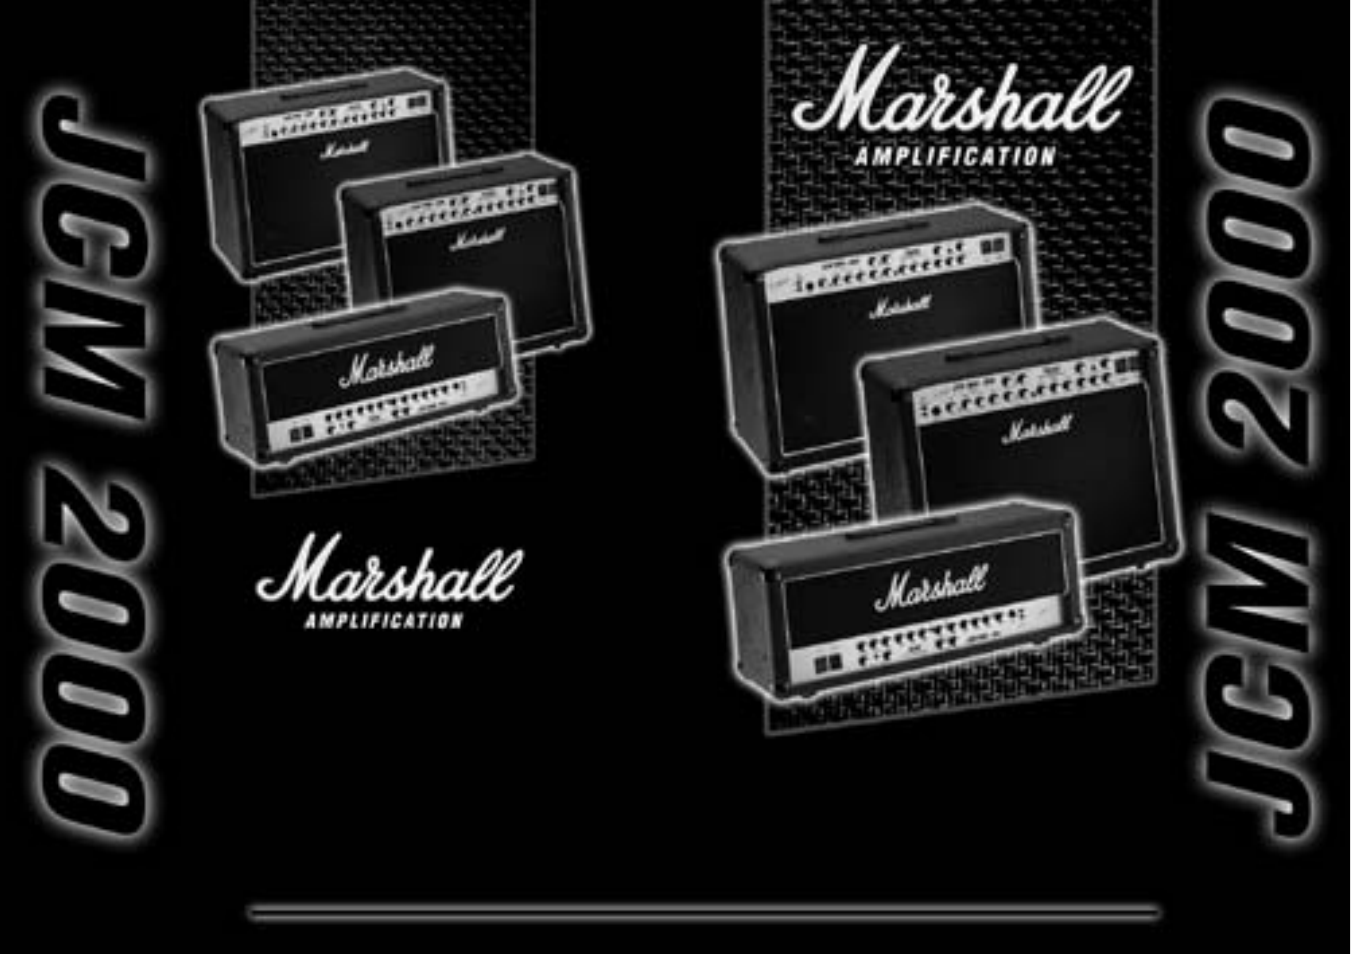 marshall amplification tsl60 user manual 7 pages also for tsl601 tsl602. Black Bedroom Furniture Sets. Home Design Ideas